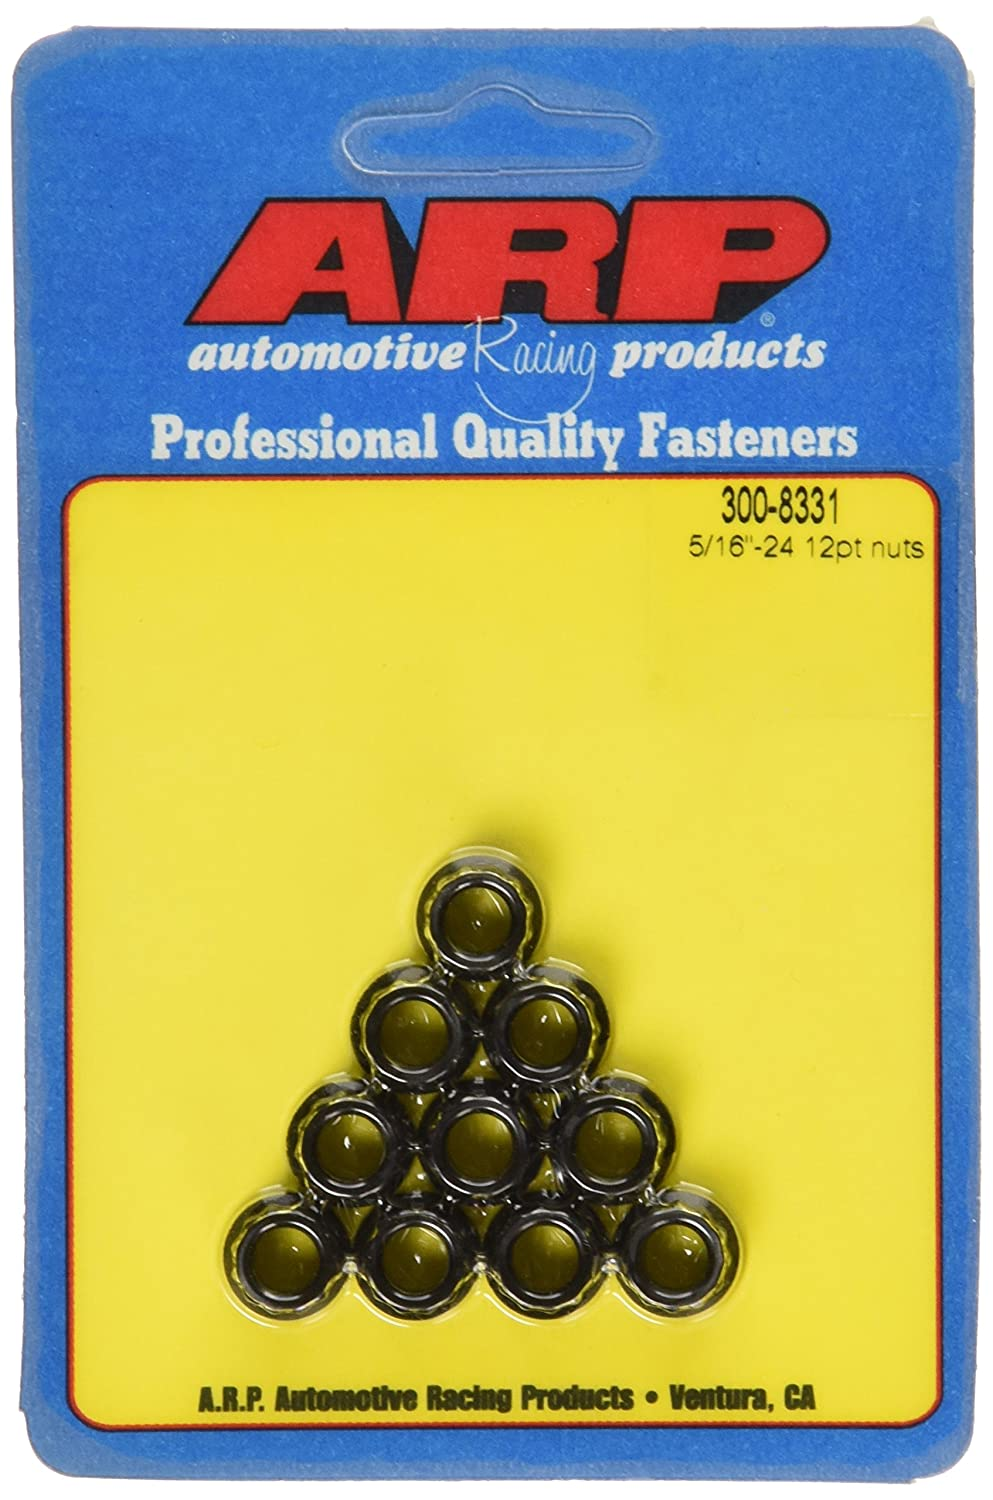 ARP 3008331 12-Point Nuts 8740 Chrome Moly with 5/16 - 24 Thread Size, Pack of 10